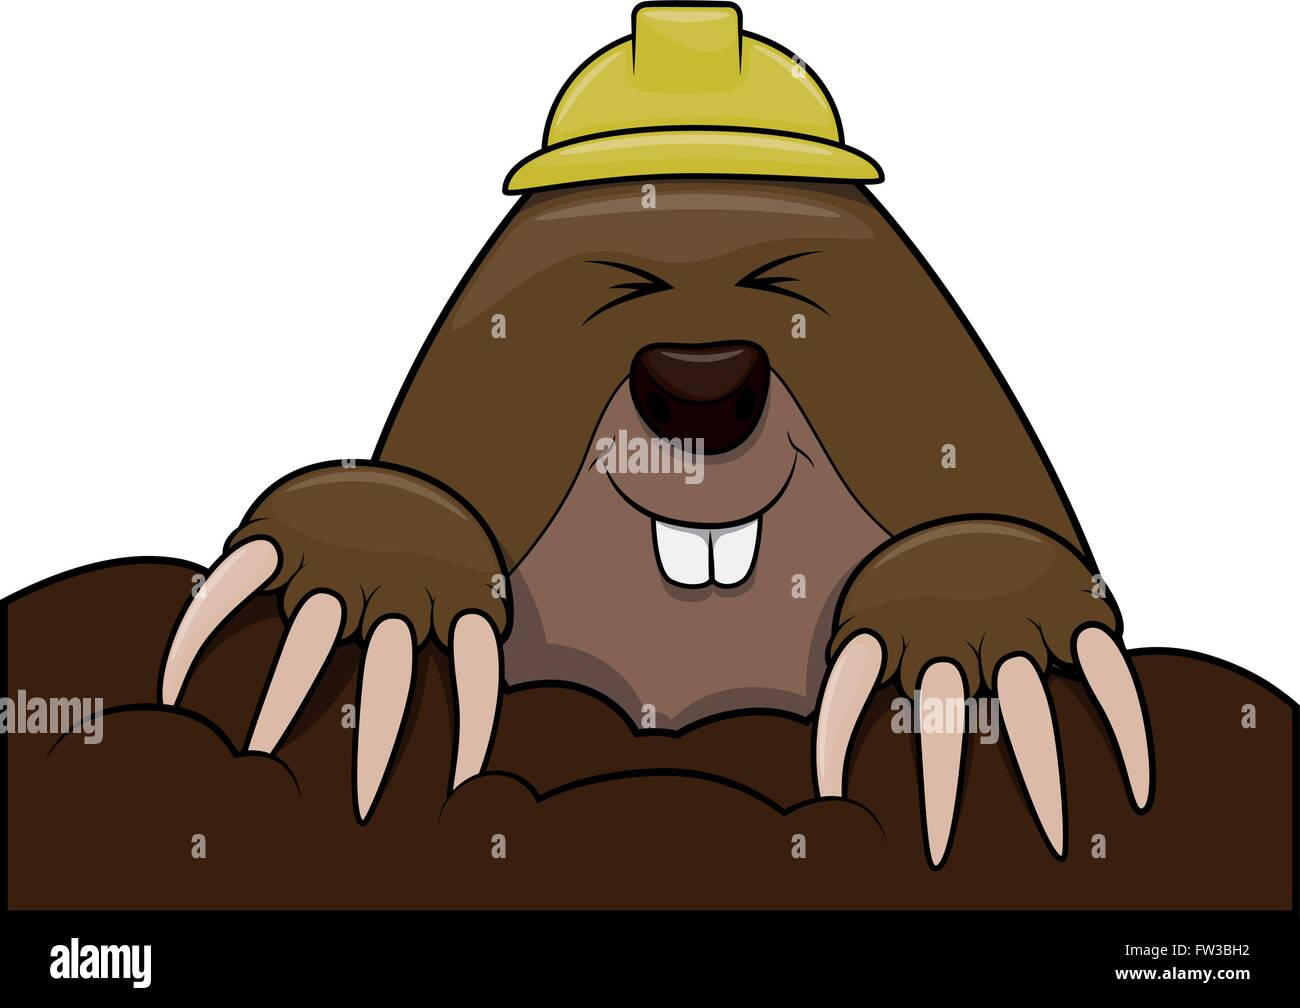 mole cartoon stock vector art illustration vector image rh alamy com Whack a Mole Cartoon Whack a Mole Cartoon